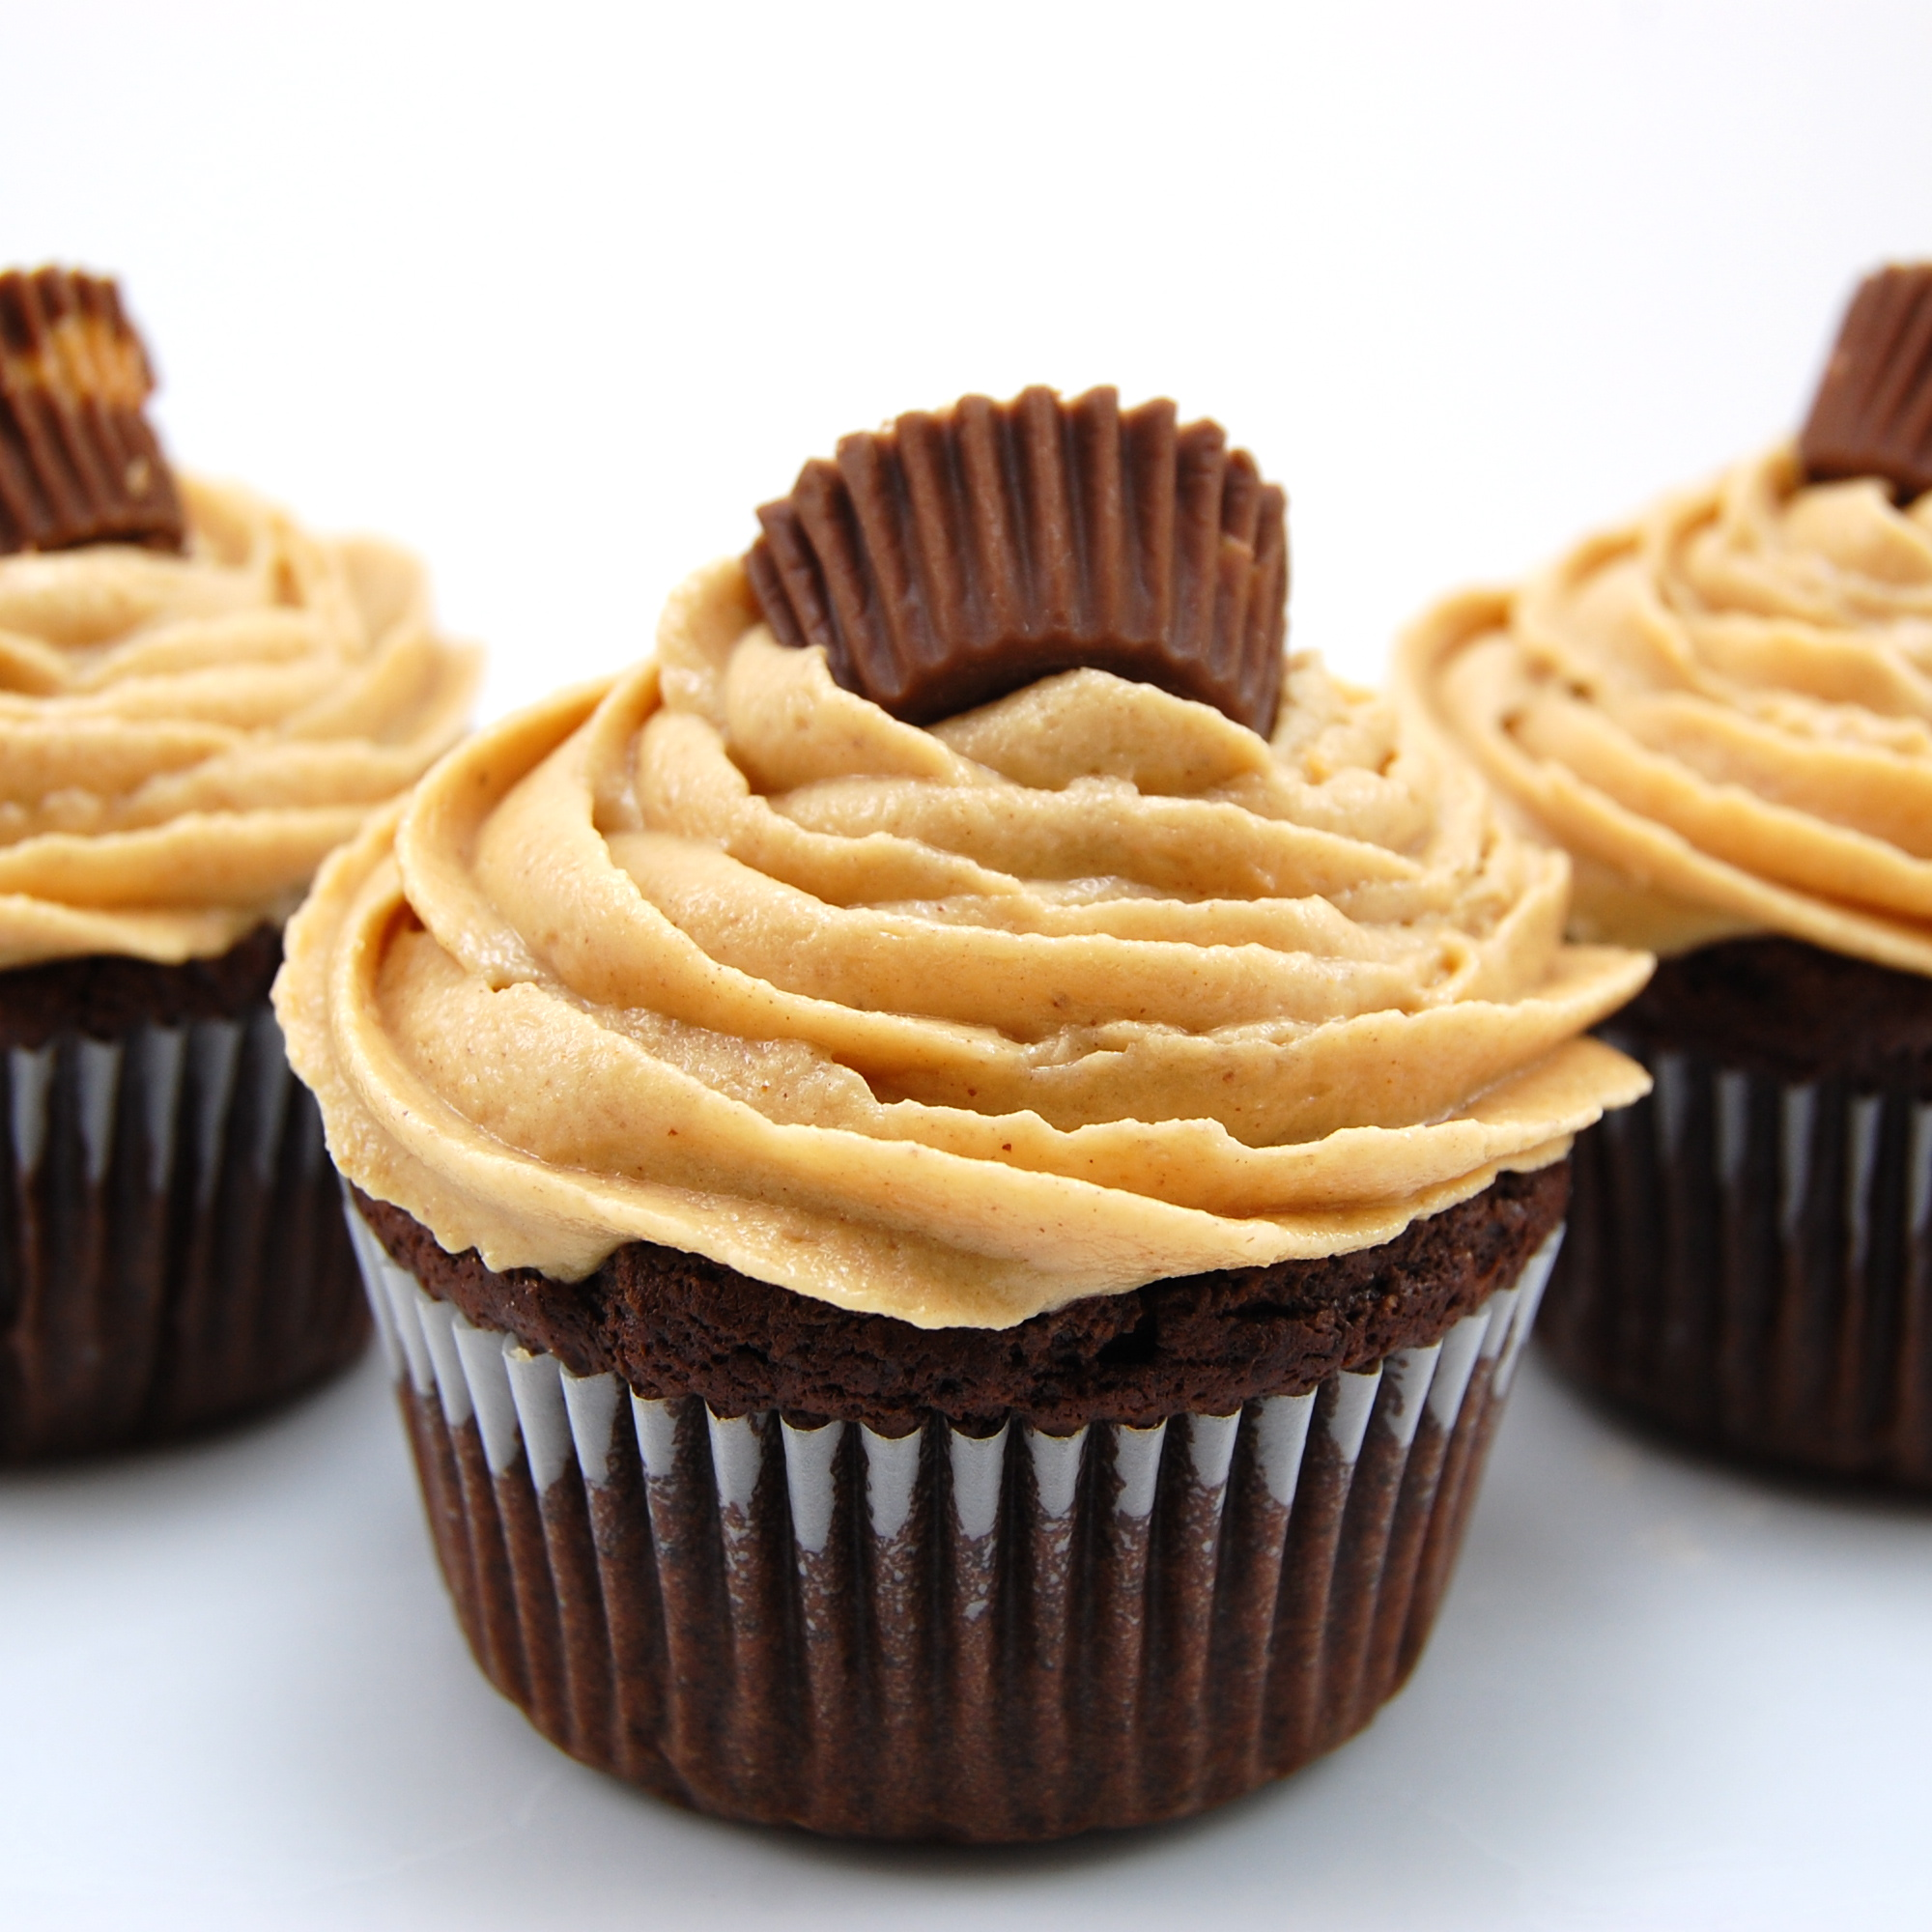 Chocolate Cupcakes With Peanut Butter Frosting And Peanut